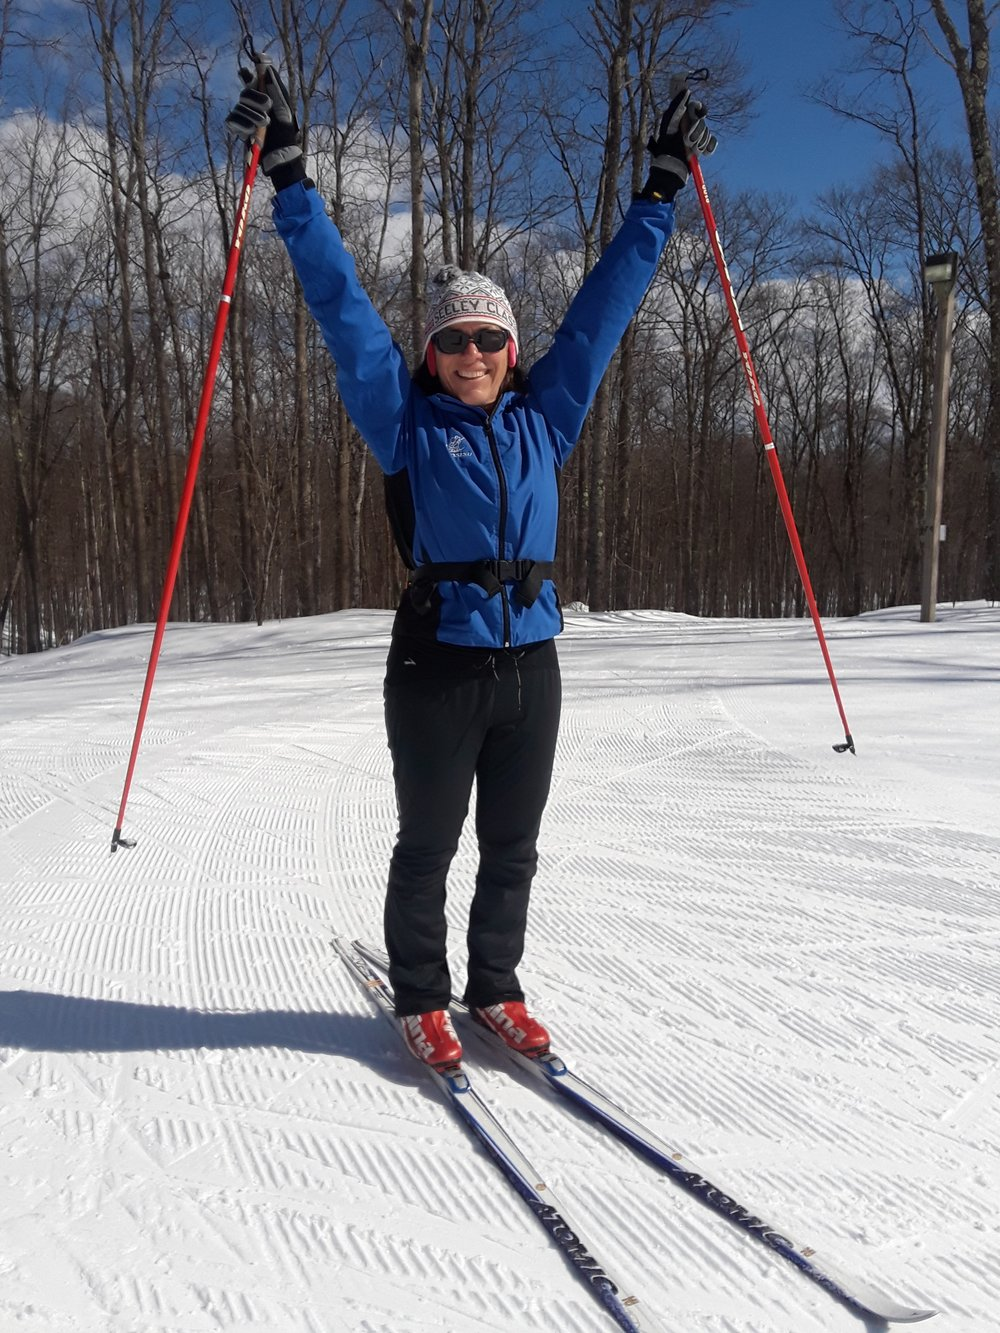 Kathy Sanville - I love the outdoors, I love being active, and I love winter; so nordic skiing is a natural fit. It all started when my boys were 3 and 5 and we were looking for something to do on those long winter Sunday afternoons. We found MYSL (Minnesota Youth Ski League) which kicked off a family passion for cross country skiing. 16 Birkie's, 10 World Loppet races, and 7 years of chaperoning high school ski events, I still love it and the local ski community that are now my friends.